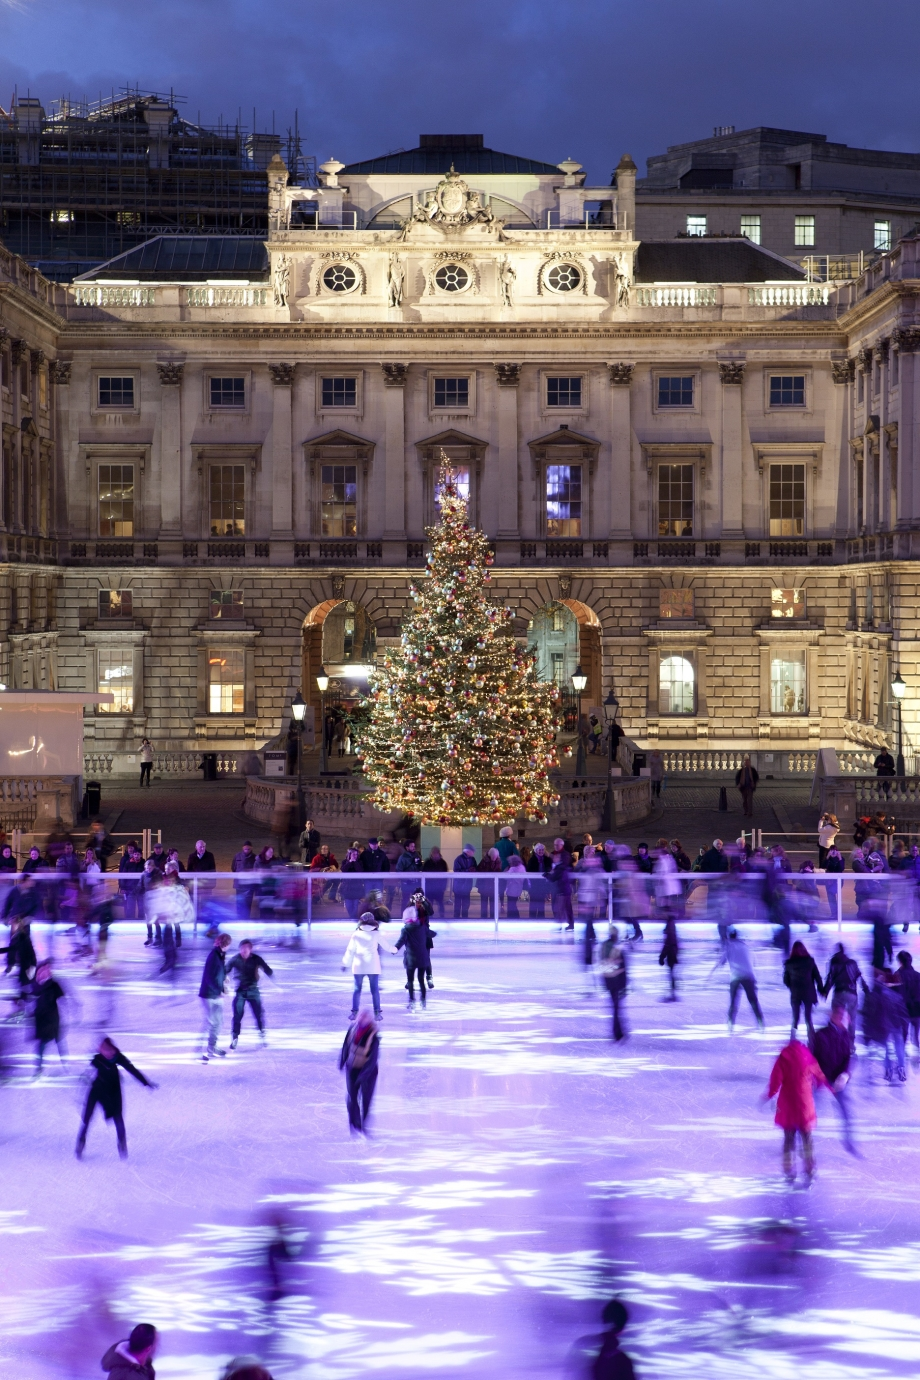 Ice Skate at Somerset House in England - AspirantSG